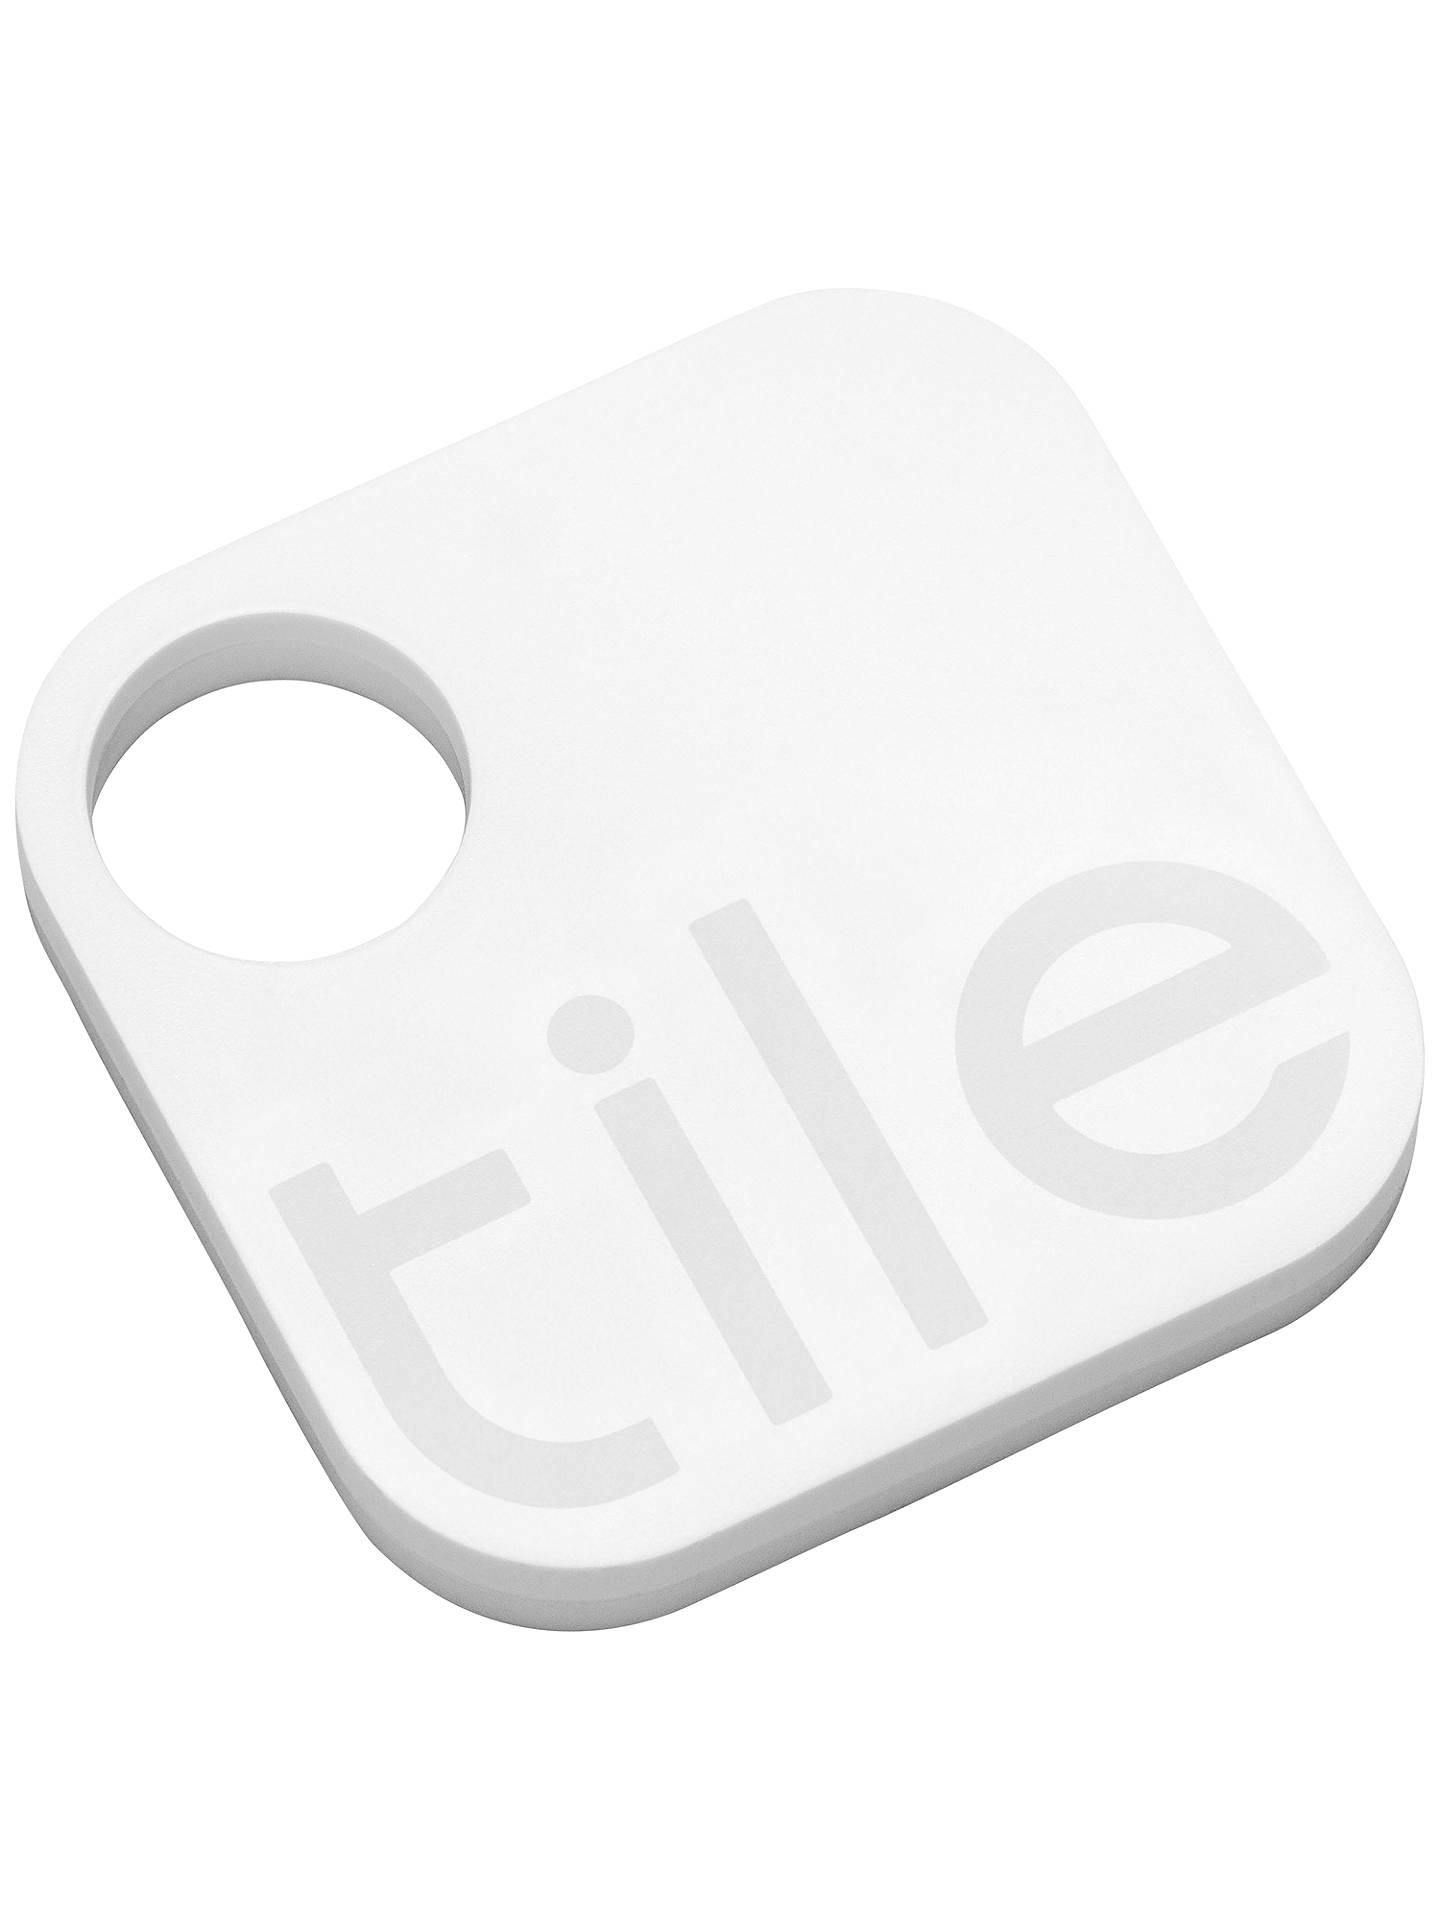 Buy Tile, Phone Finder, Key Finder, Item Finder, 1 Pack Online at johnlewis.com